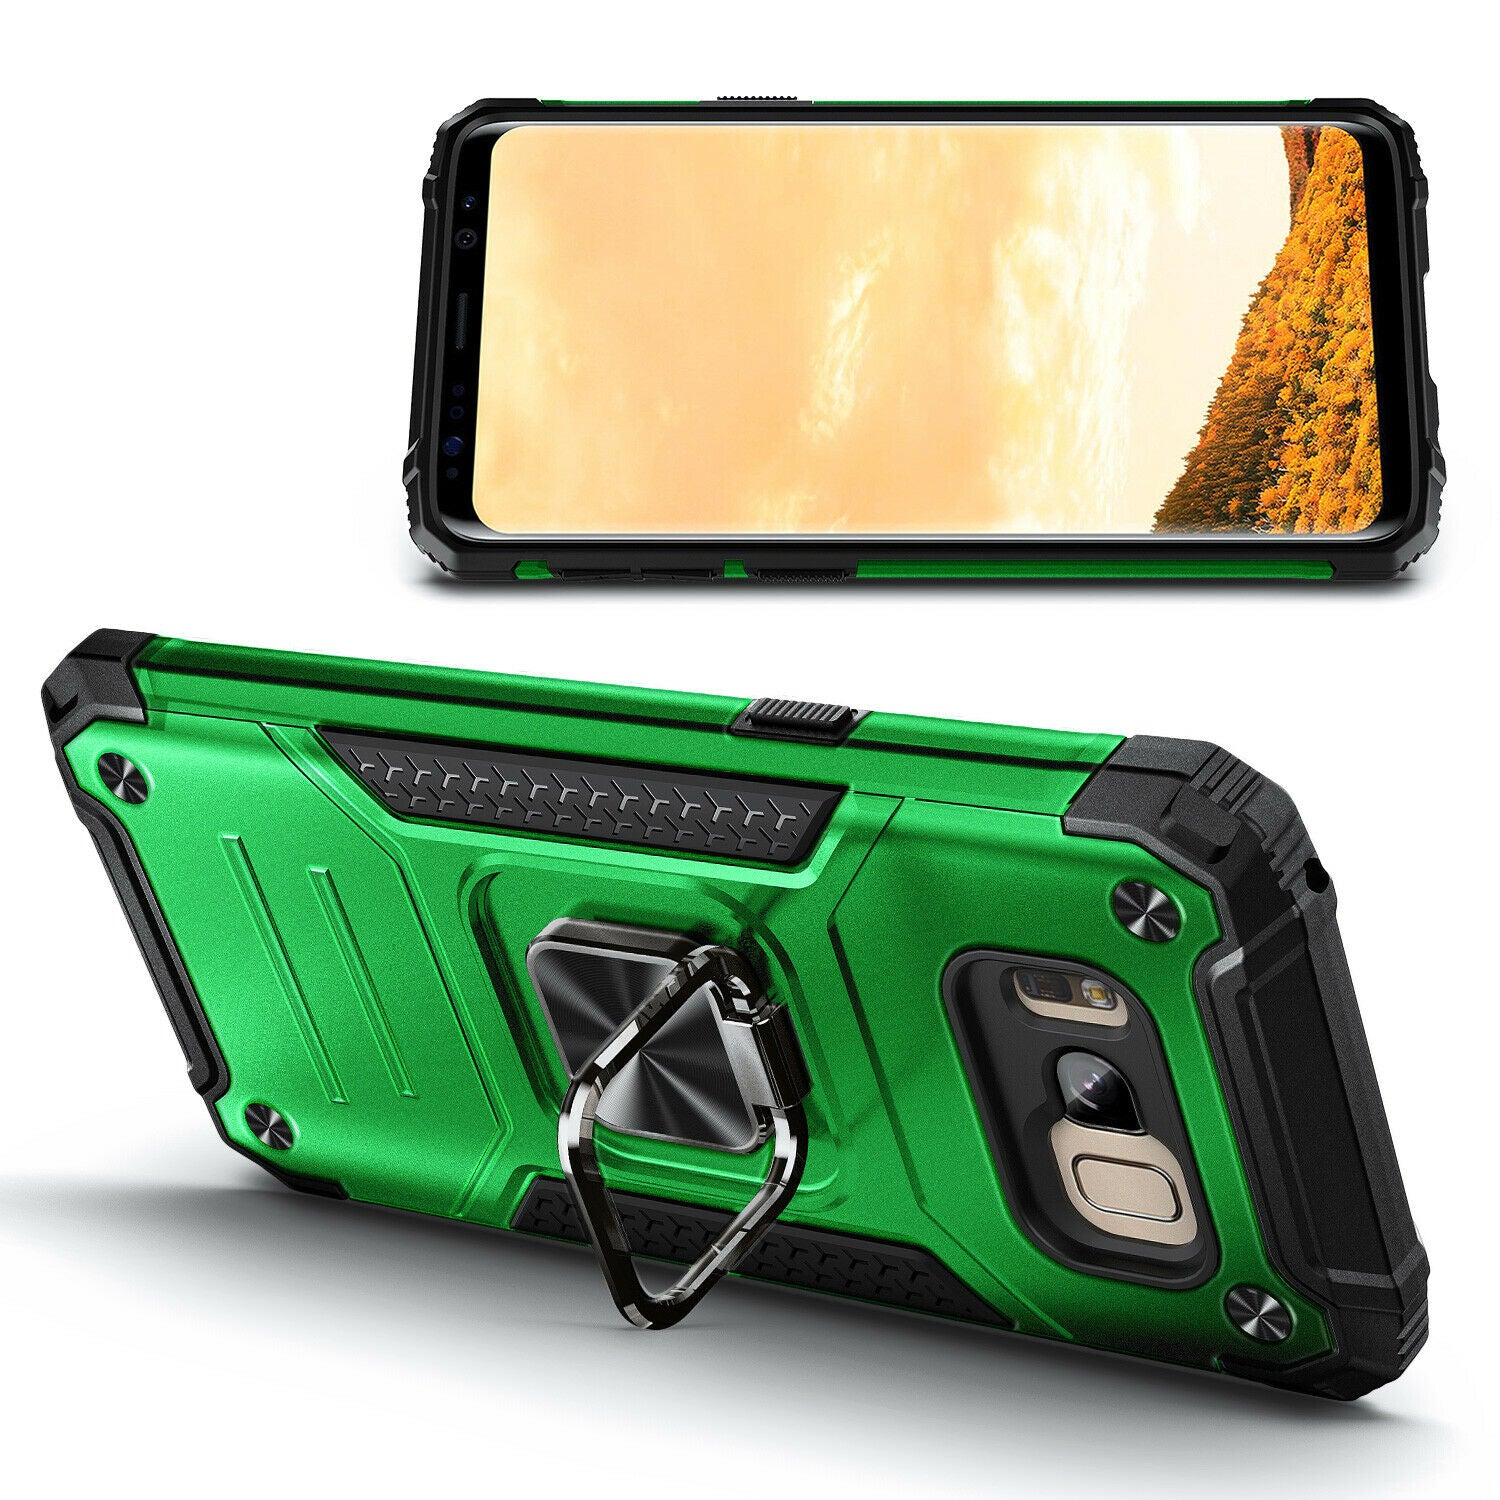 Dysolar Solar Powered Usb Portable Charger Power Bank 12000mah Simple Mobile Phone Battery